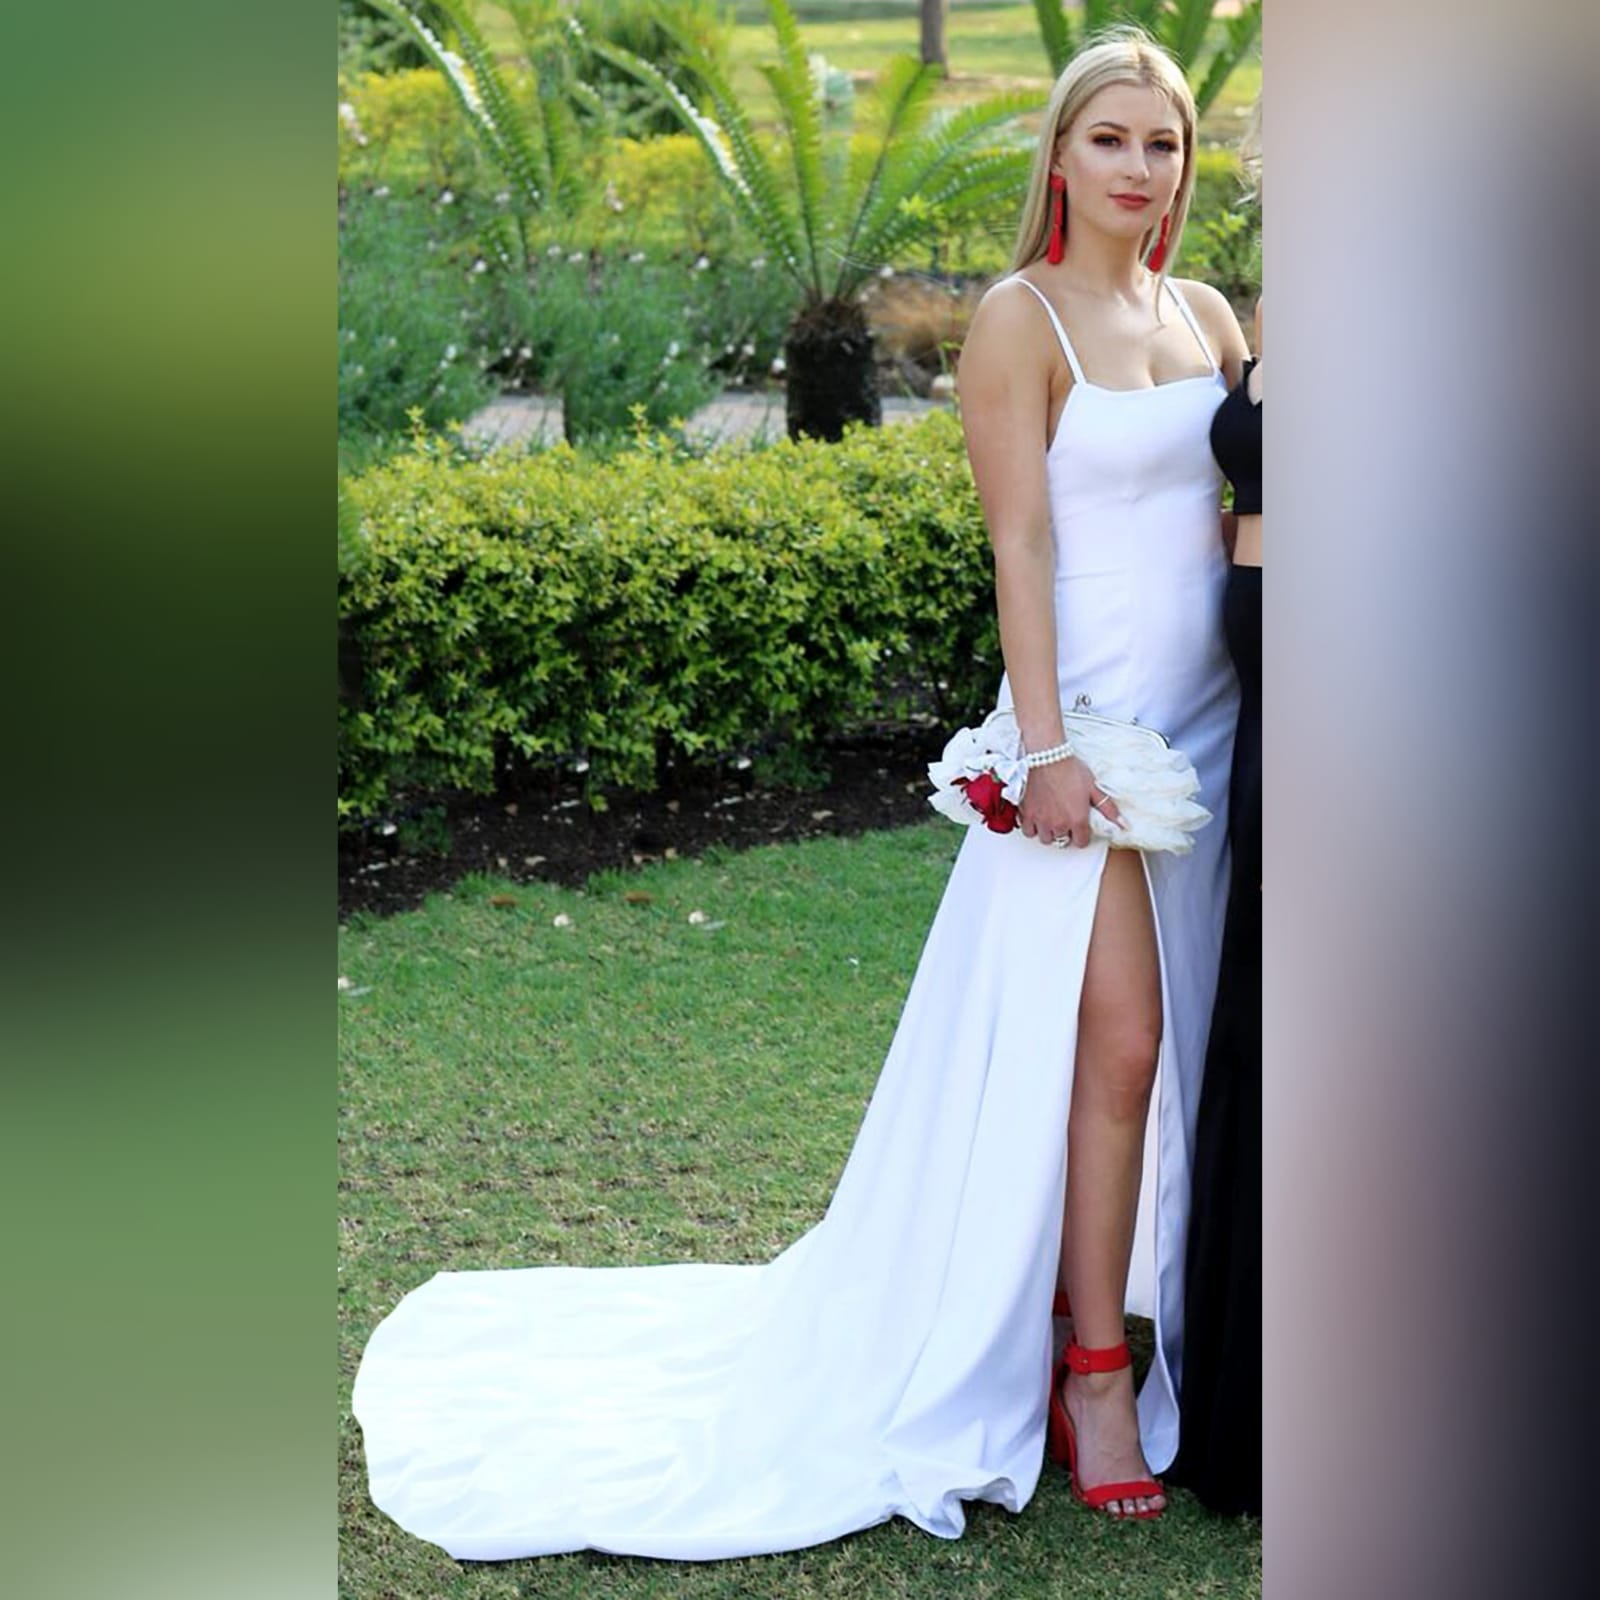 White satin long prom dress with a low open back 3 white satin long prom dress with a low open back, with strap detail. Straight neckline, 2 slits and a train.